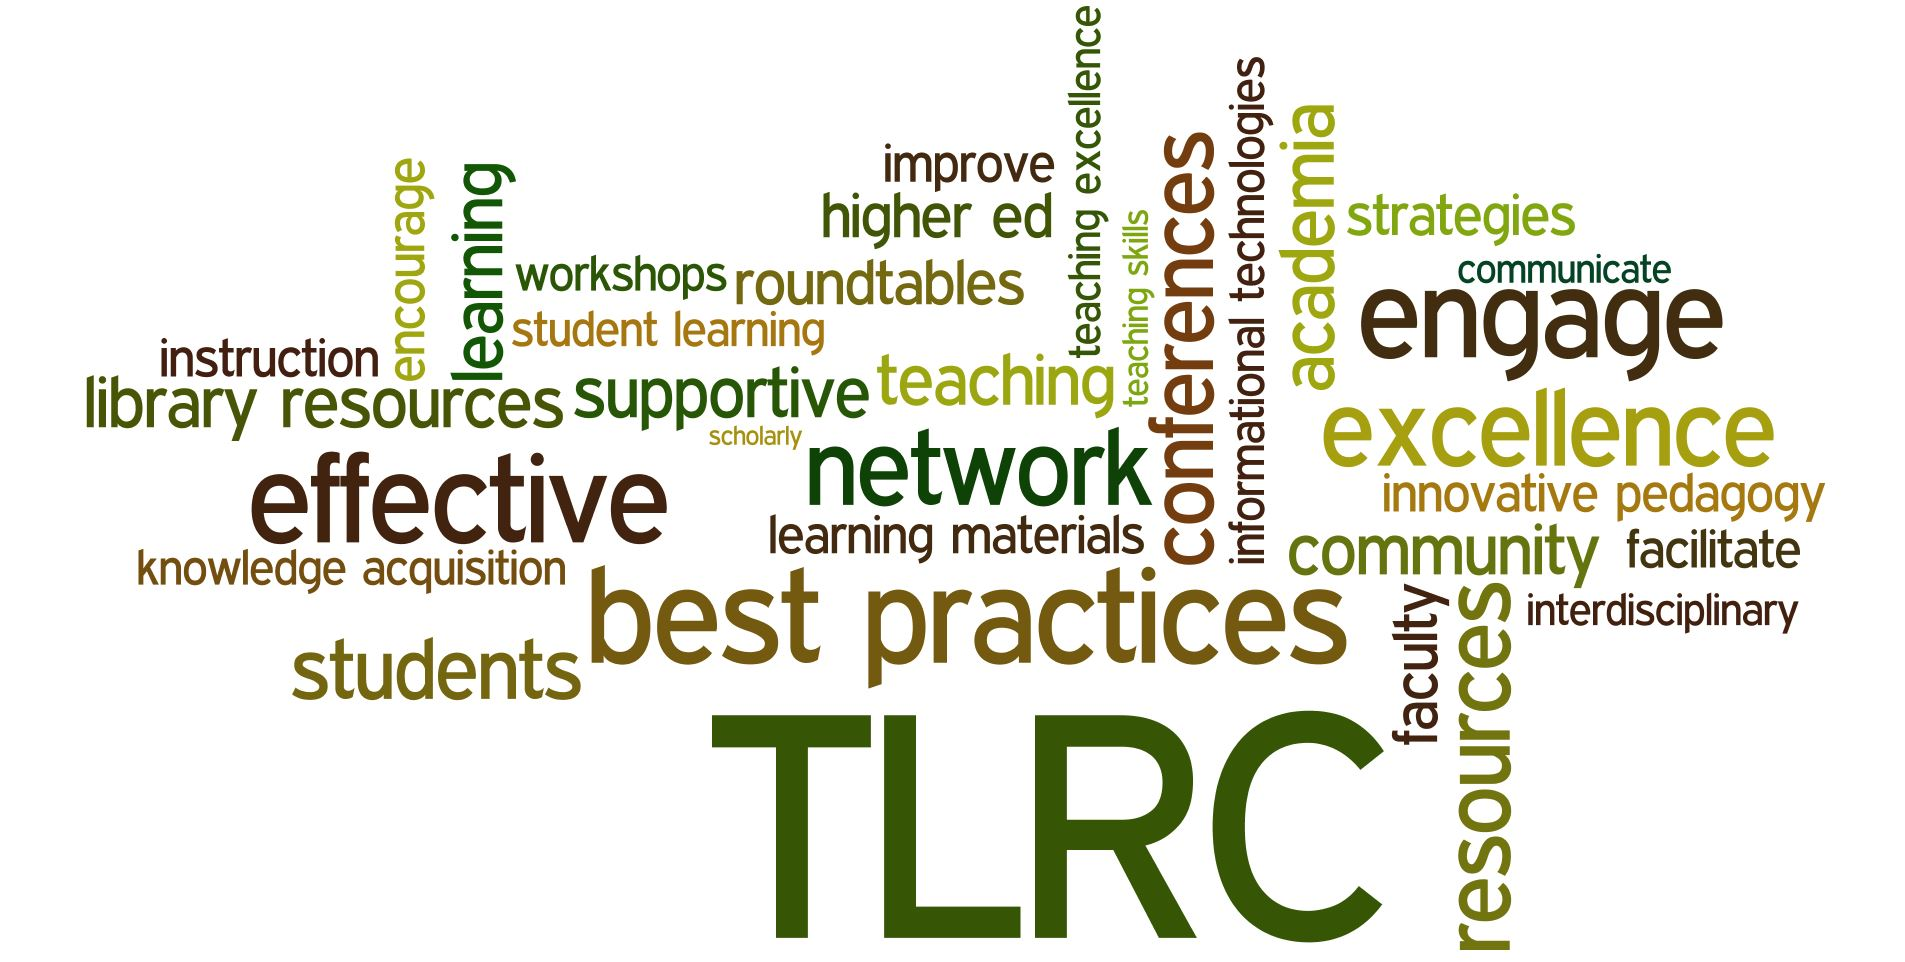 TLRC Wordle Image